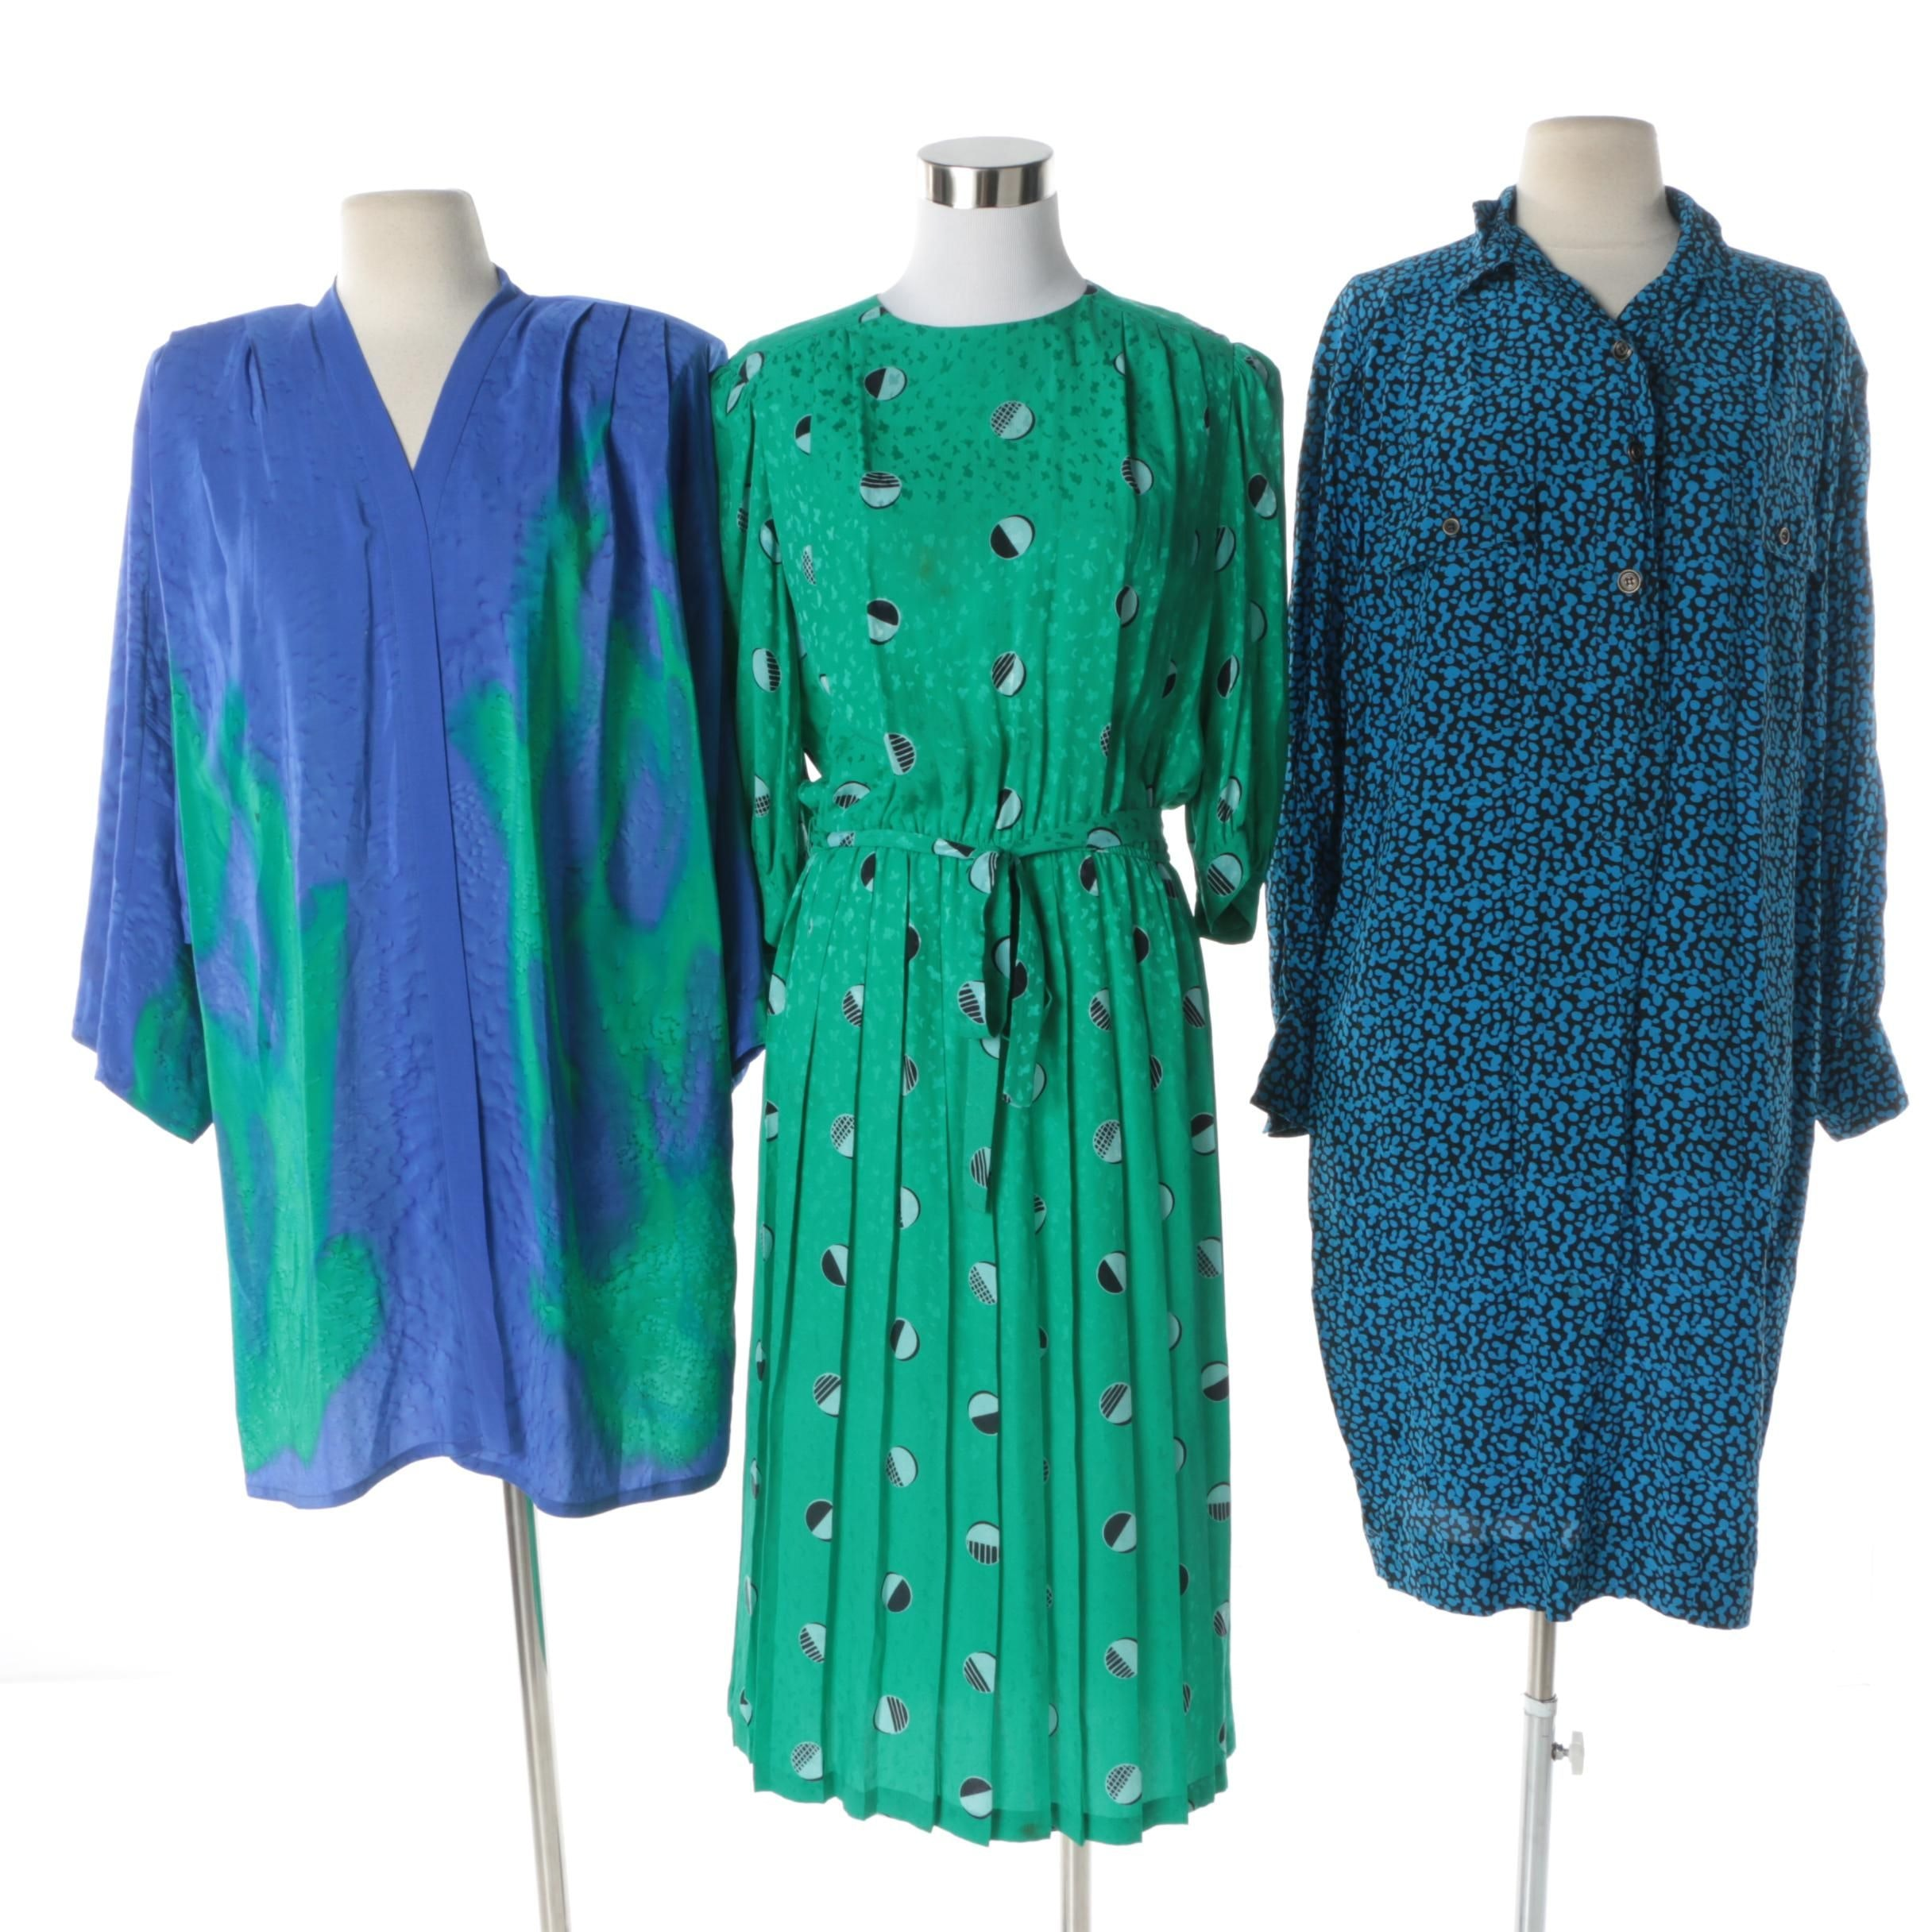 Women's Circa 1980 Silk Dresses and Jacket Including Adrianna Papell